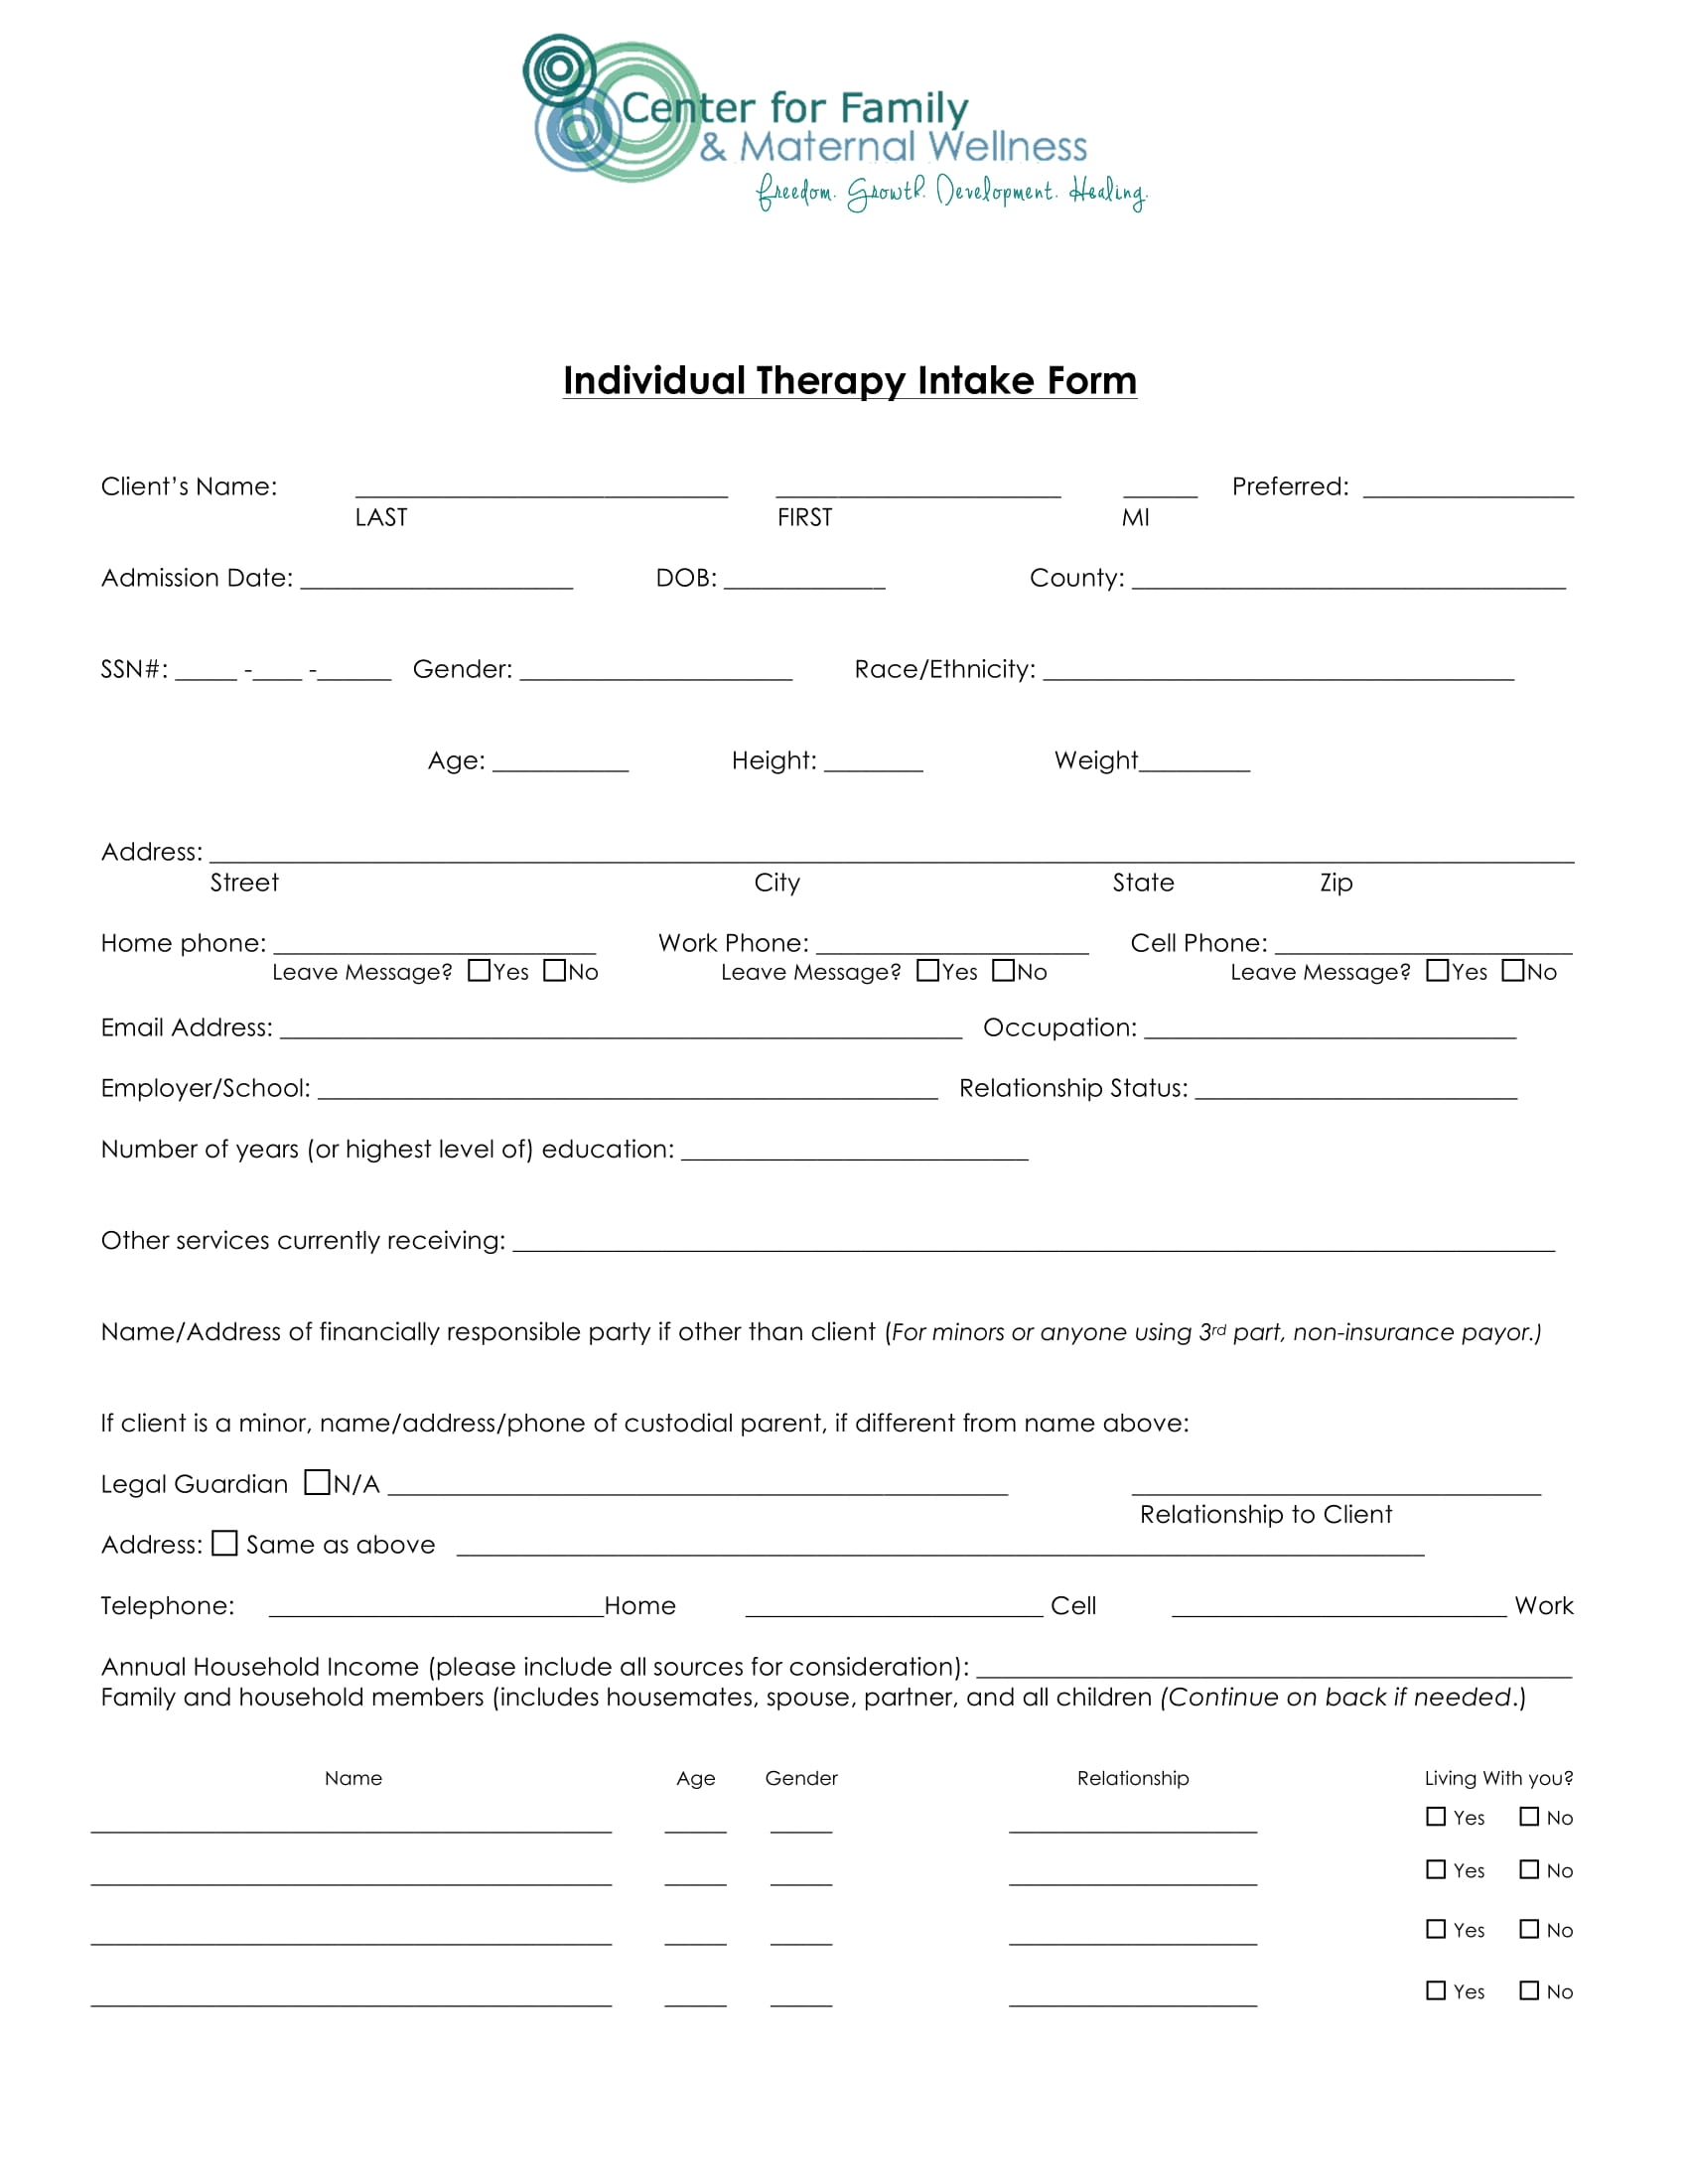 individual therapy intake form 1